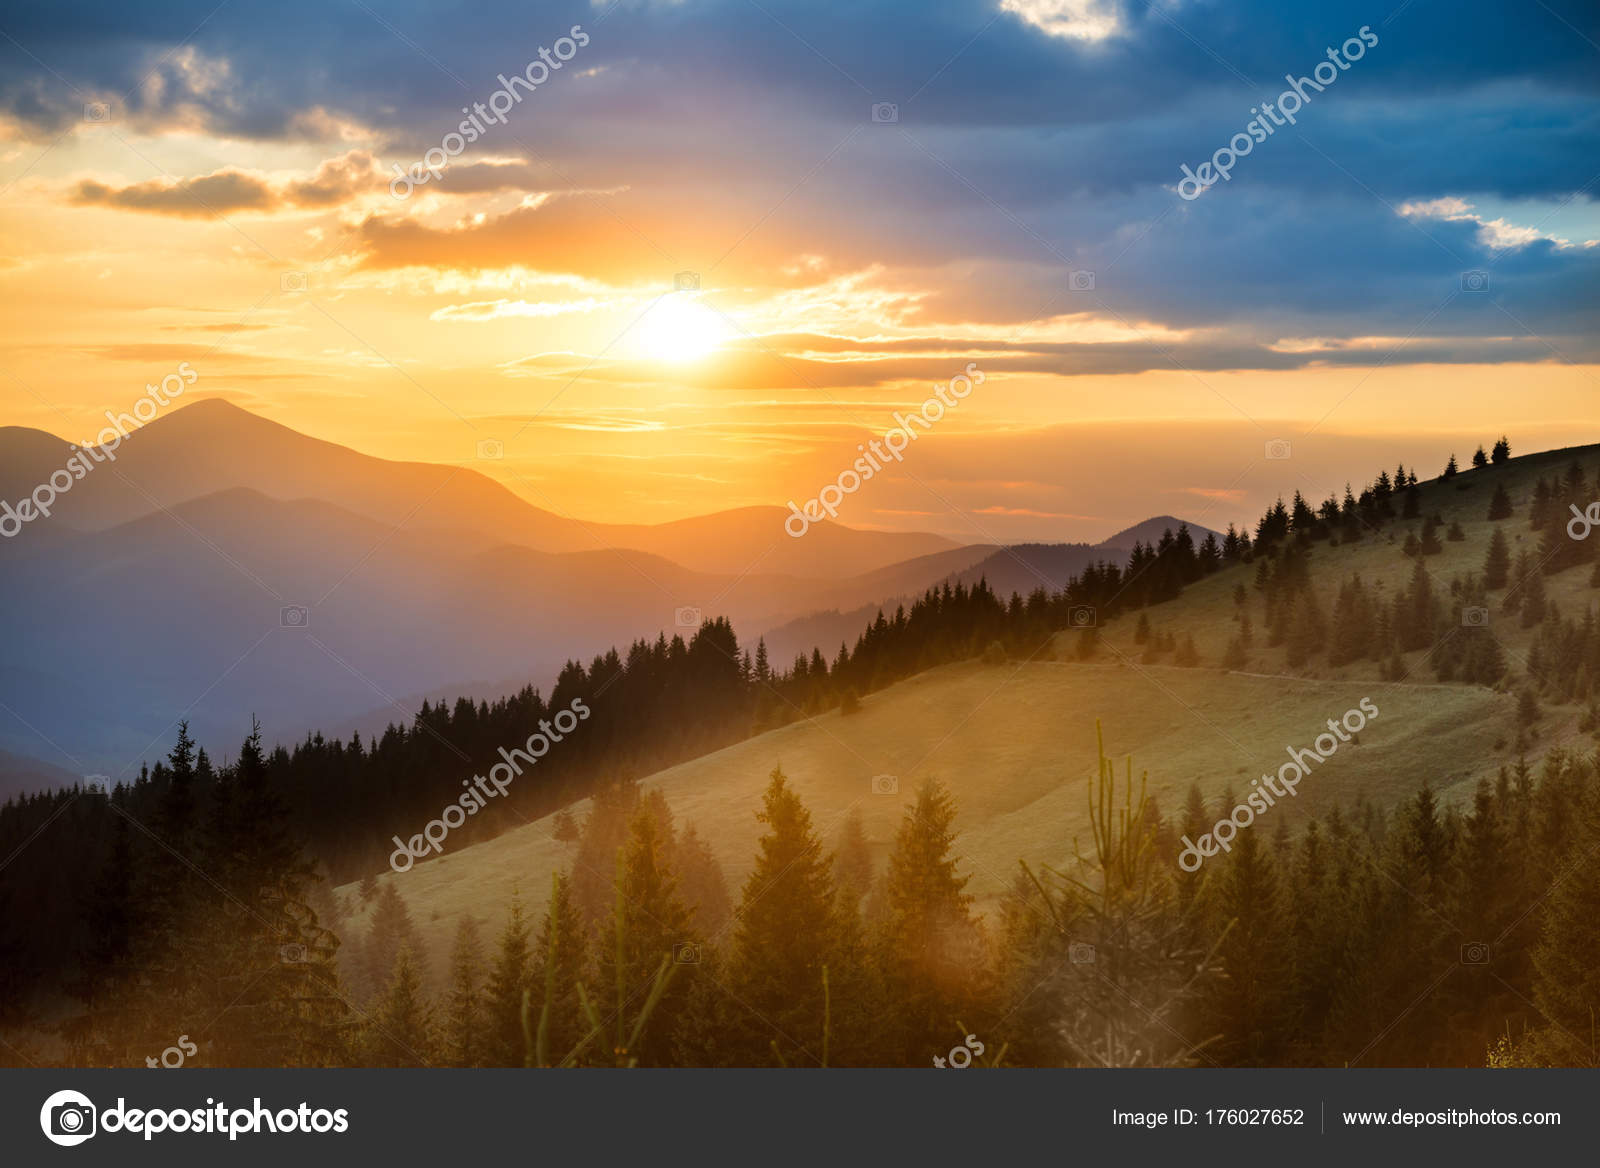 Beautiful Dramatic Sunset In The Mountains Landscape With Sun And Orange Clouds Photo By Dovapi